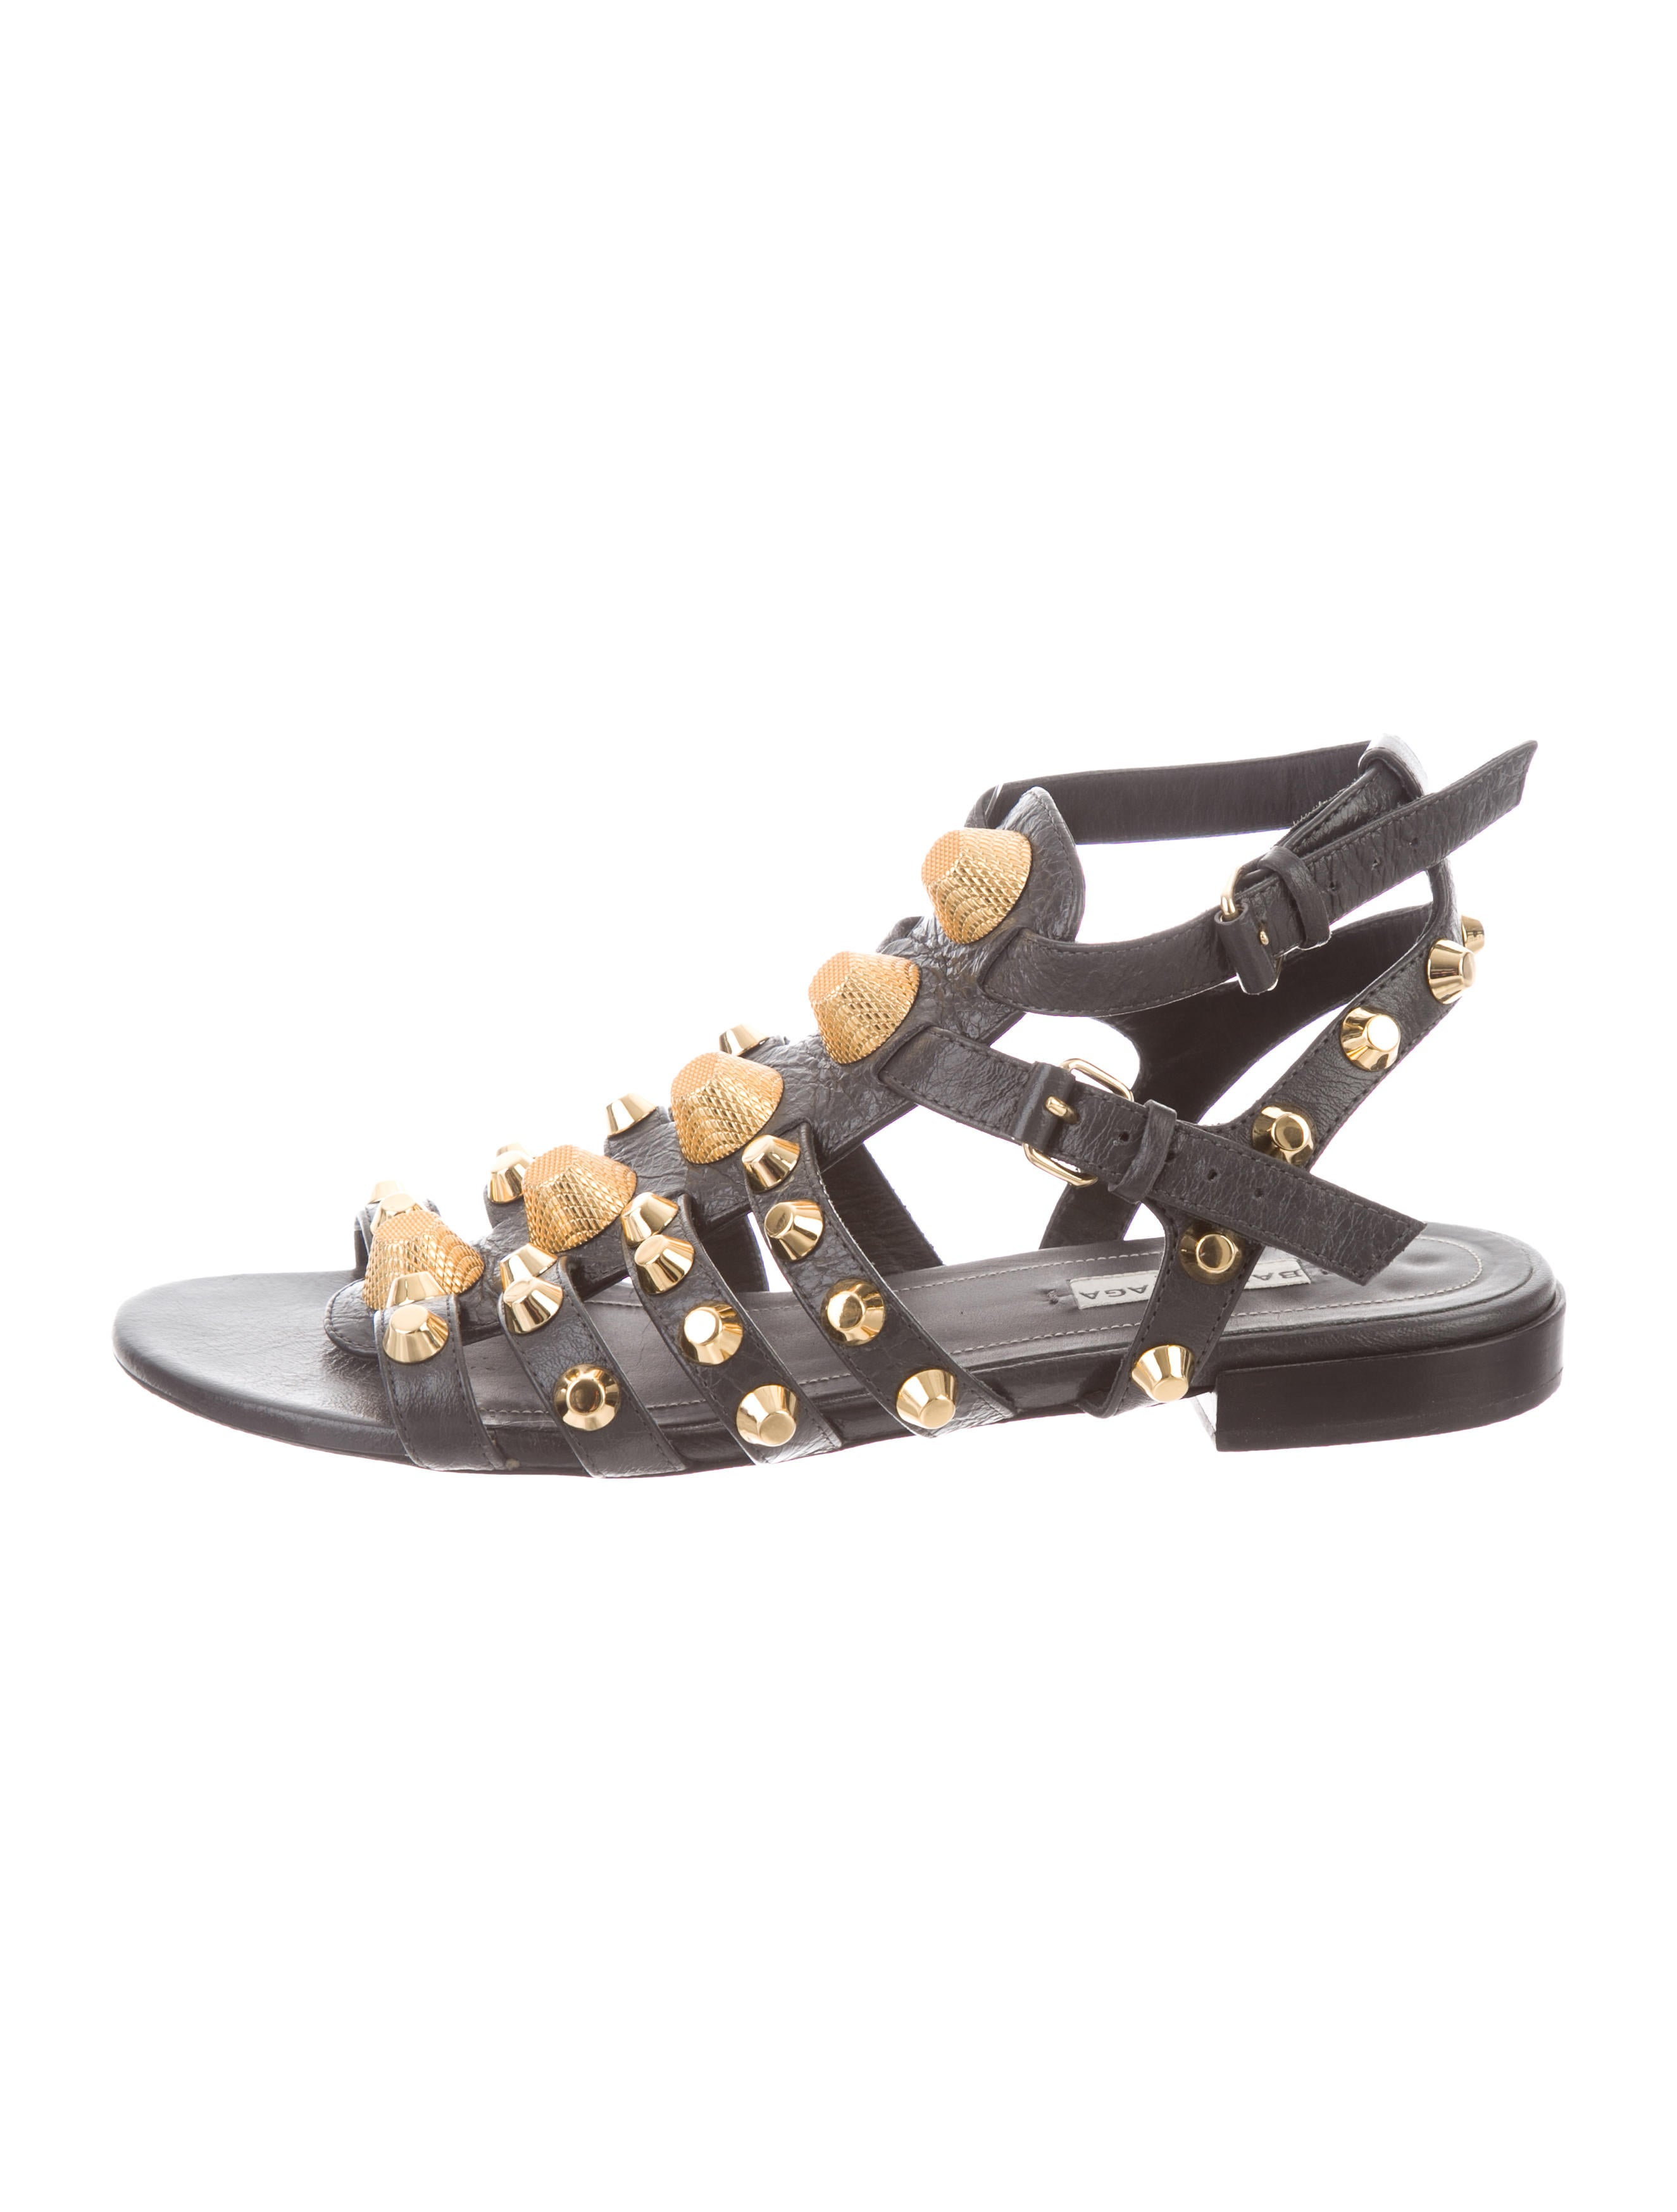 Shoes Realreal Bal72438the Ar5j3ql4 Gladiator Studded Balenciaga Sandals 5j4LA3R